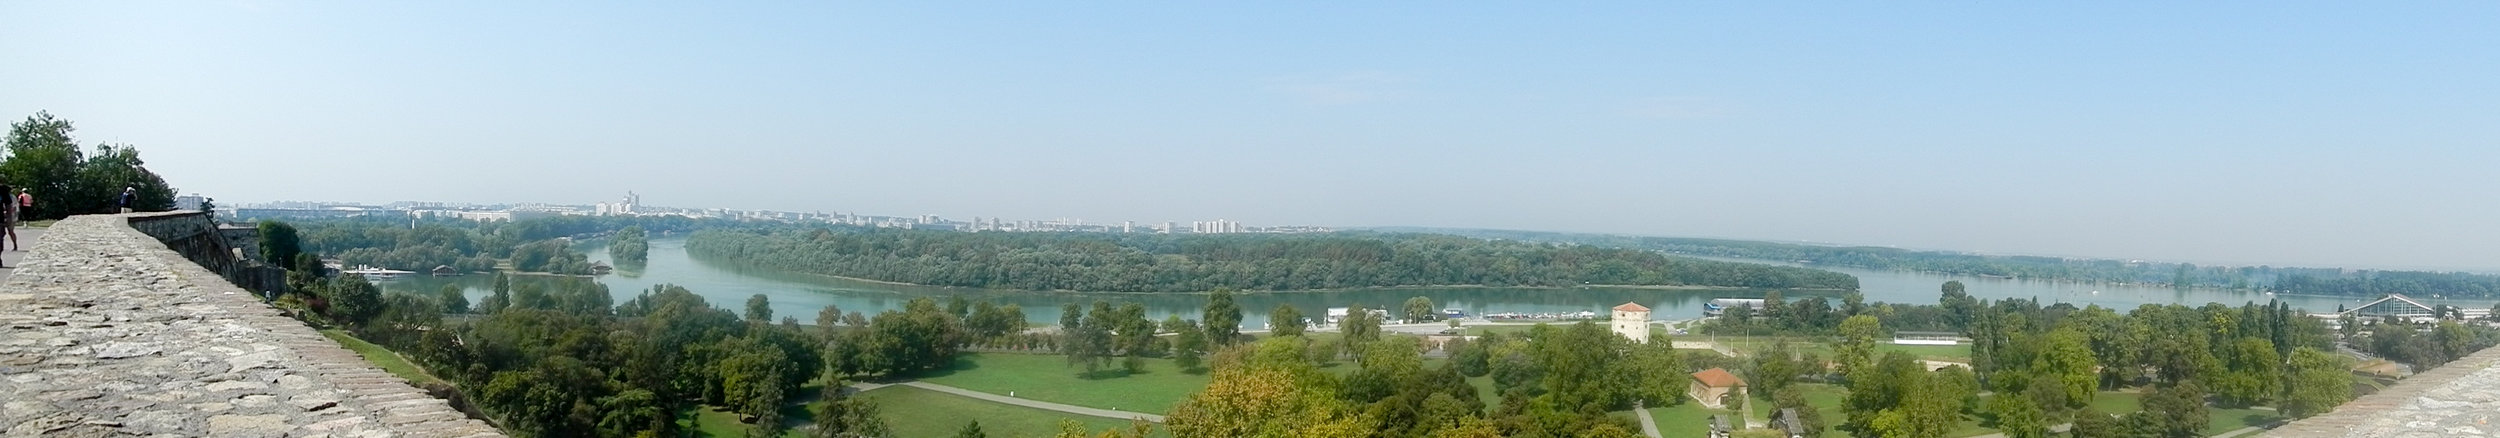 View from Kalemegdan Fortress, Belgrade